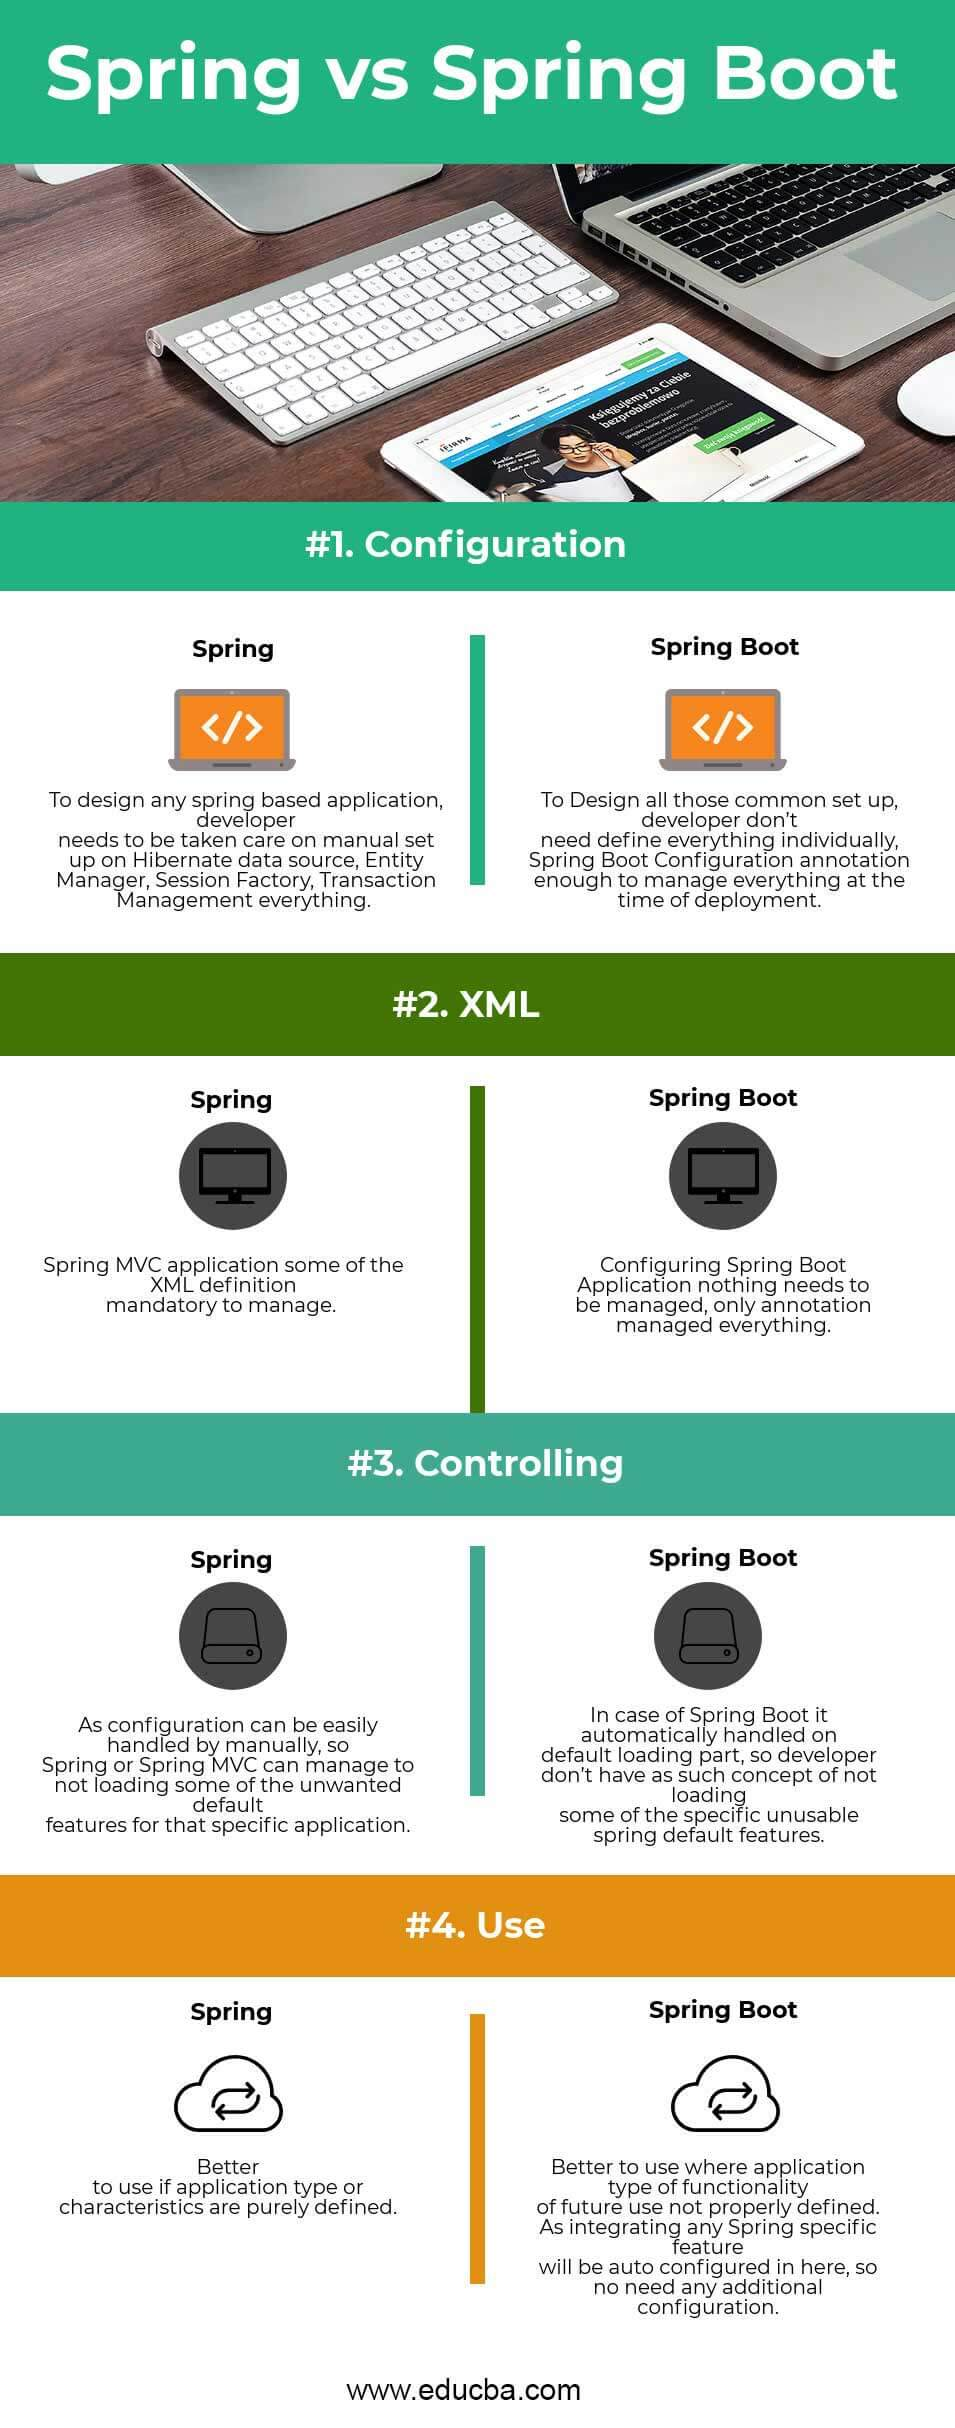 d69bb0296a794 Spring vs Spring Boot - Find Out The Top 4 Useful Differences